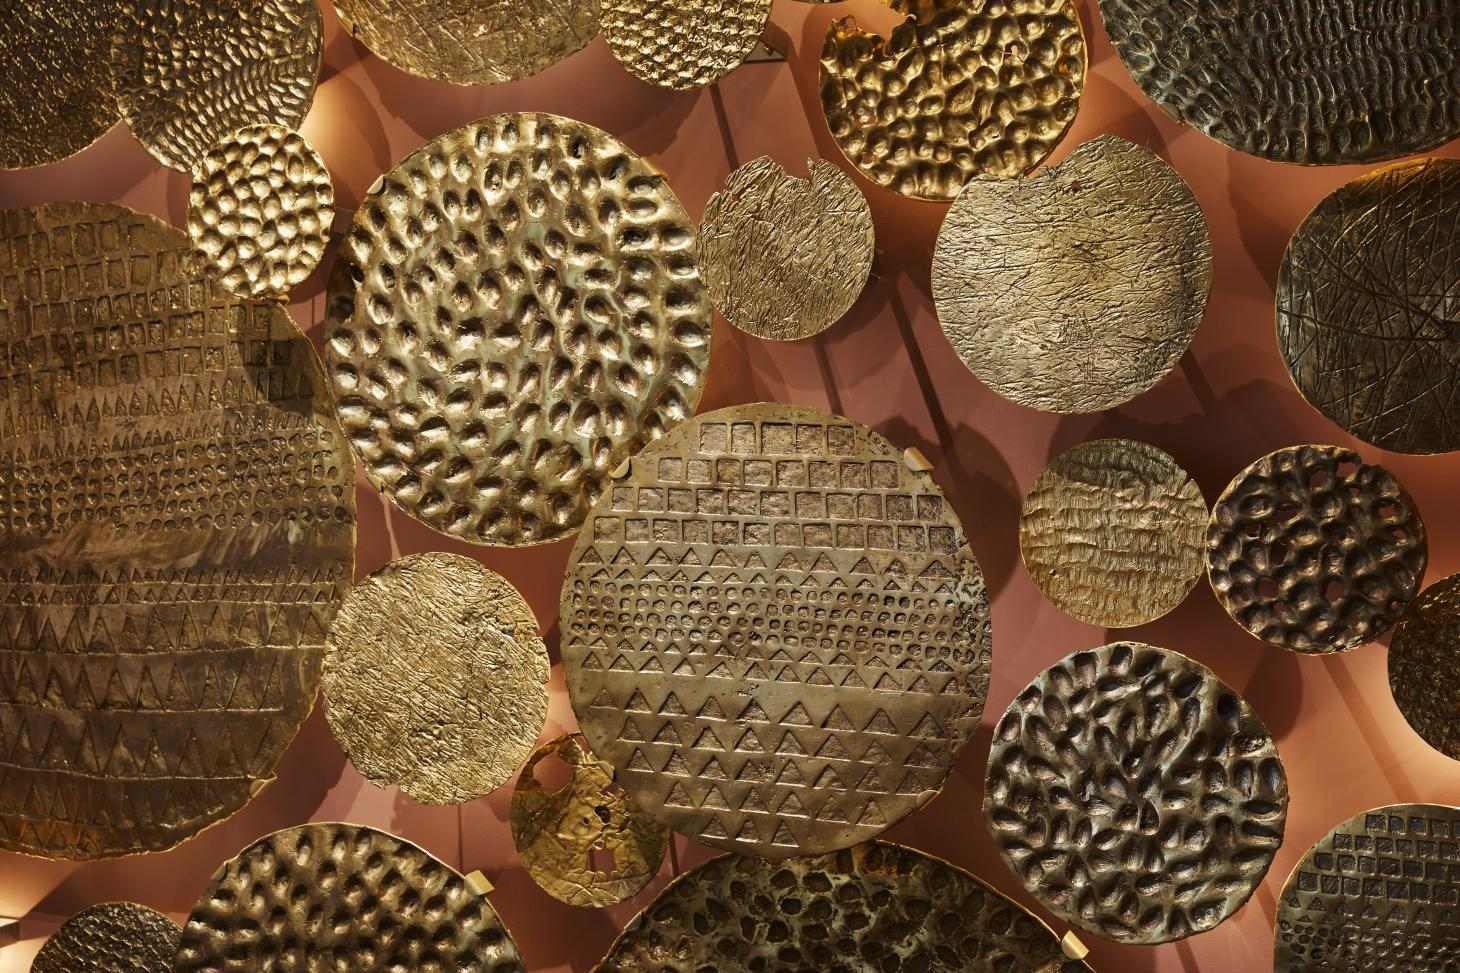 Detail of Ghana Pavilion at London Design Biennale featuring circular metal relief objects